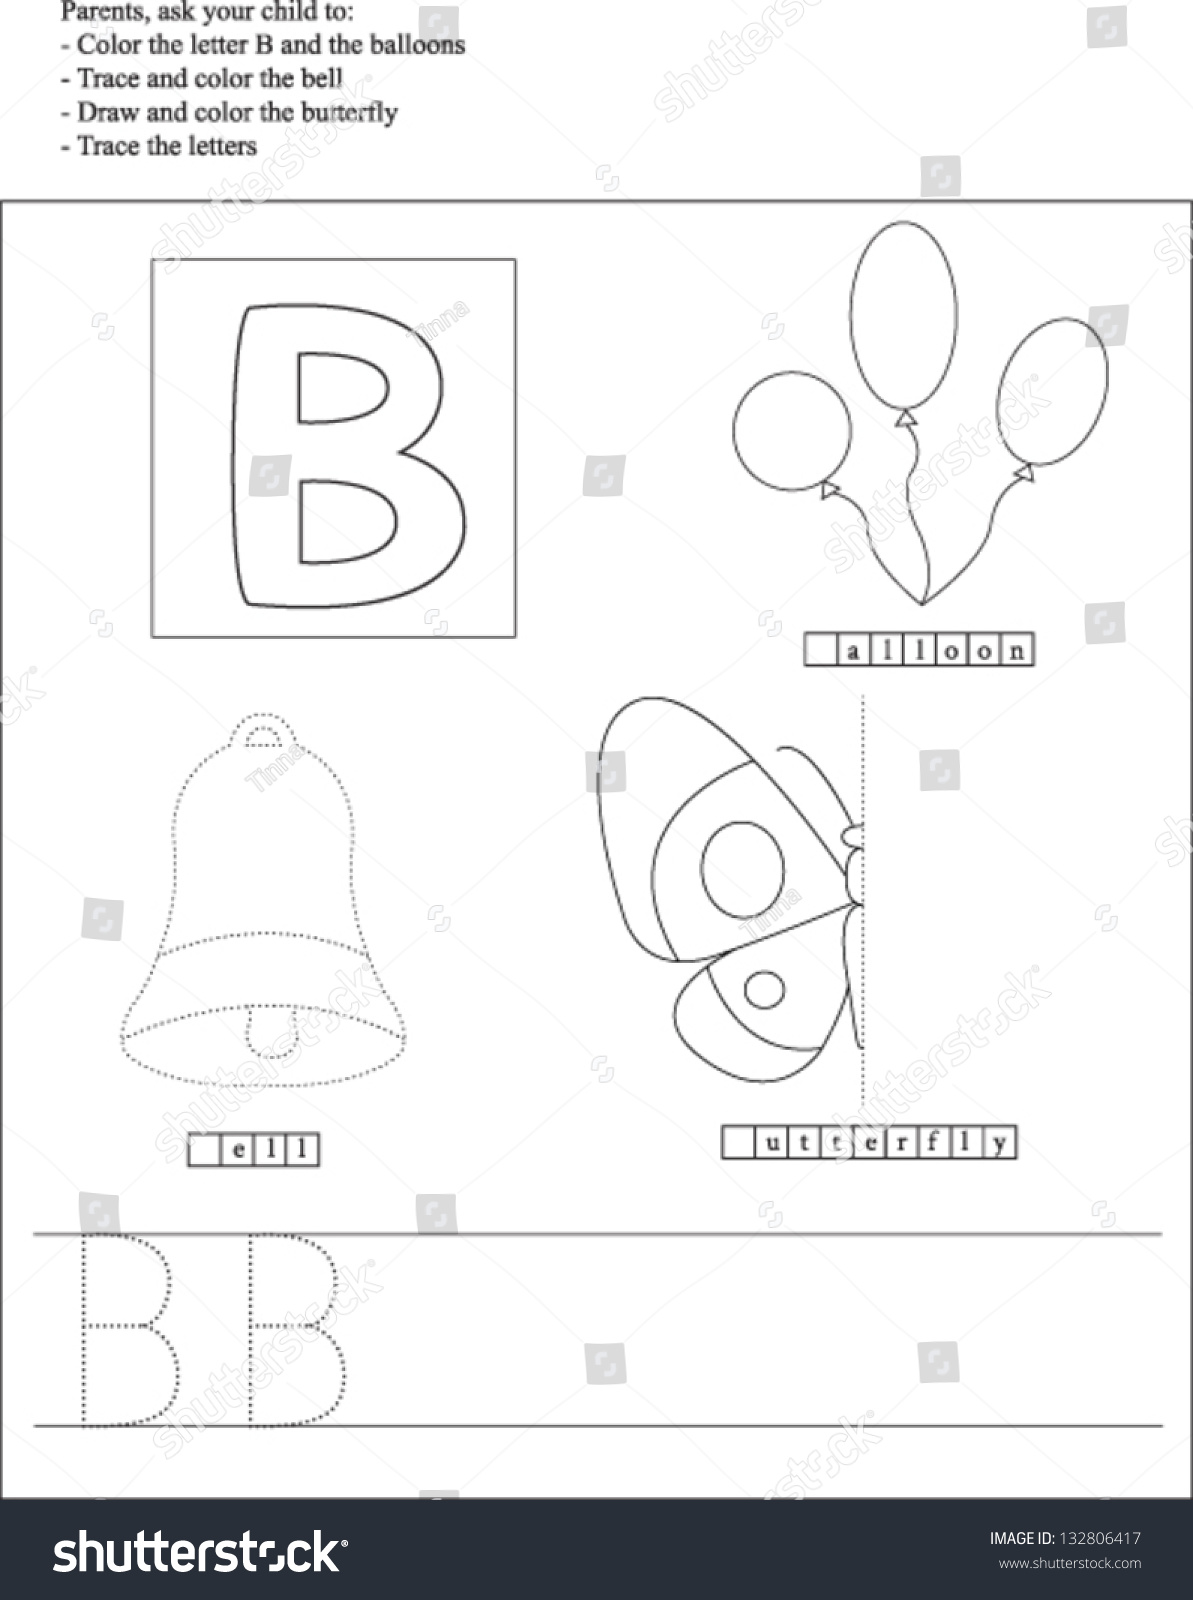 worksheet Letter B Worksheet trace color letter b worksheet preschoolers stock vector 2018 and for preschoolers